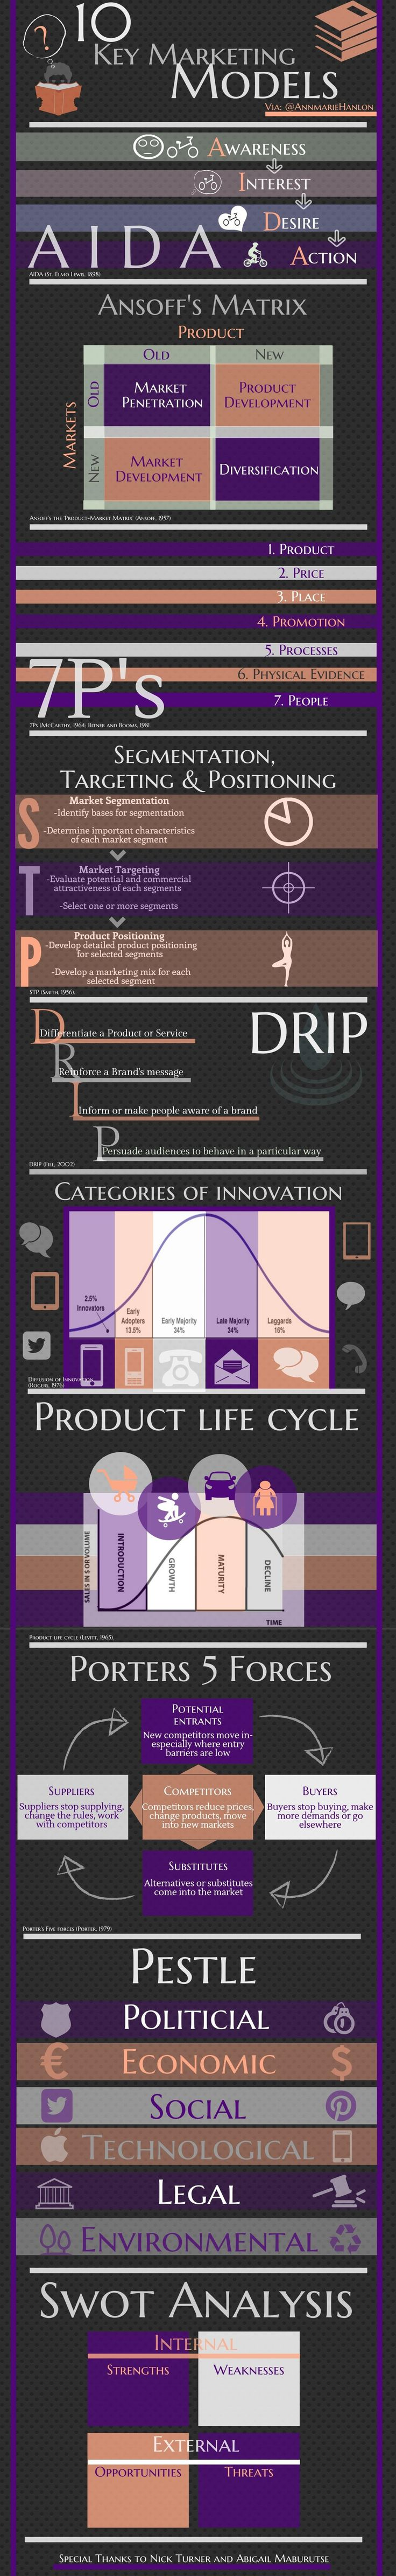 Product lifecycle management infographic liked by #fabacus > Infographic showing top 10 marketing models